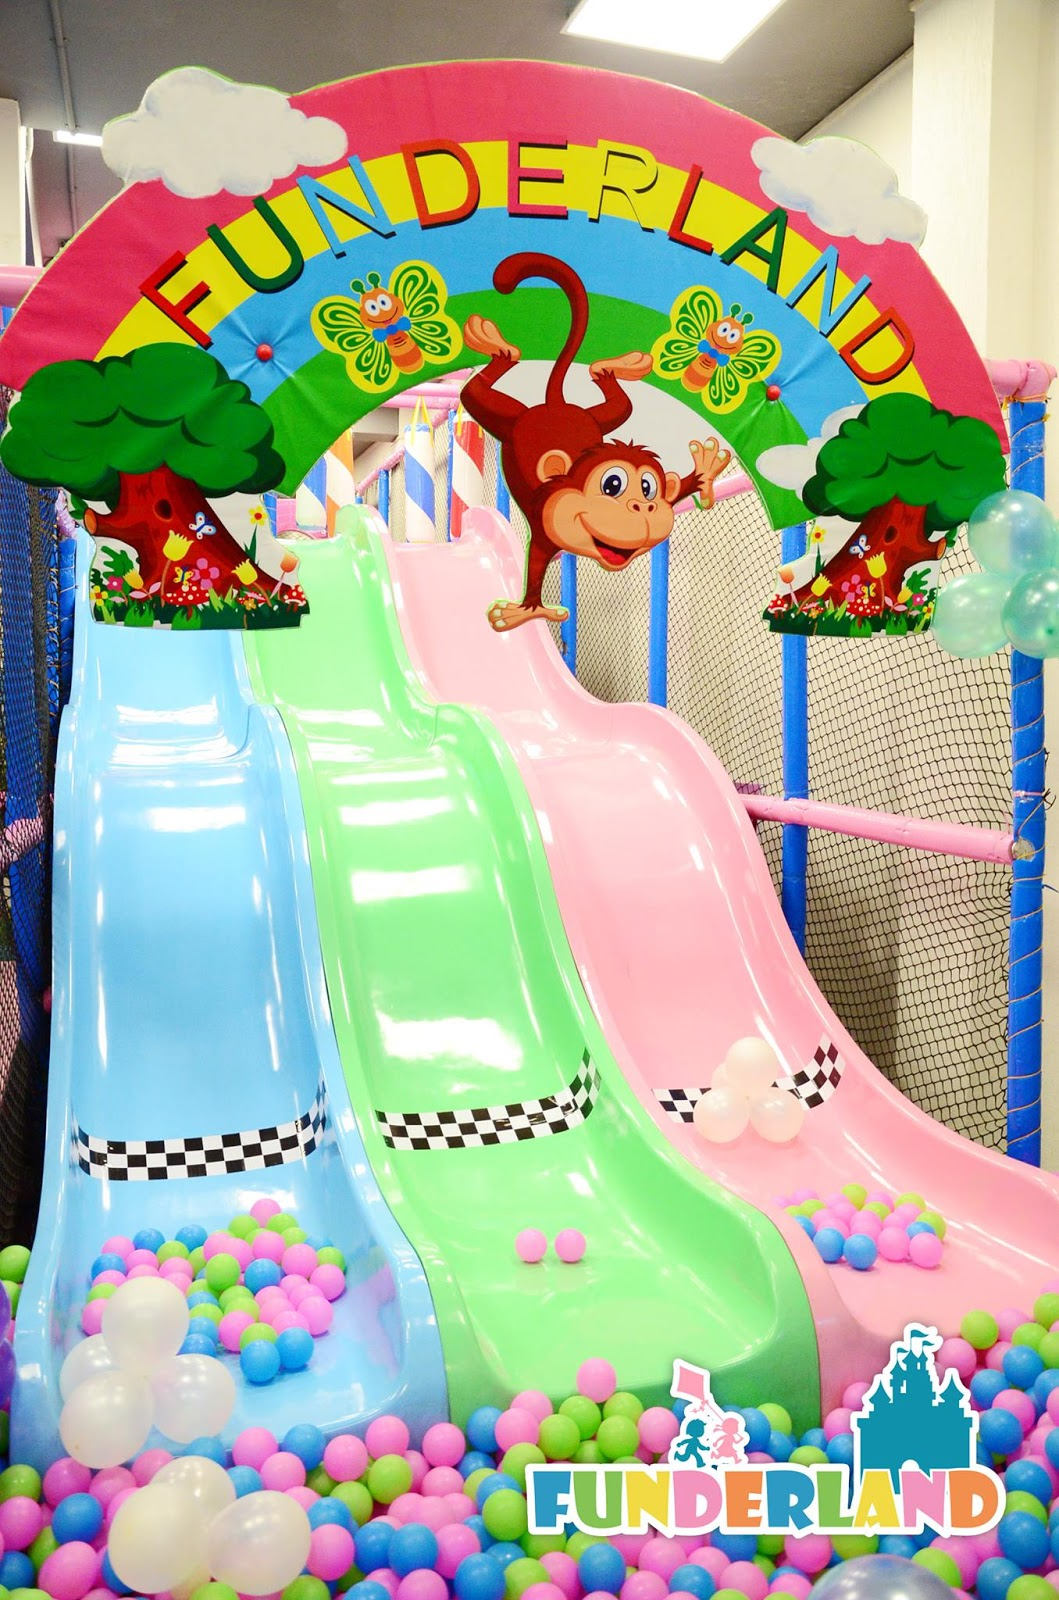 places for kids birthday parties delhi funderland india kids